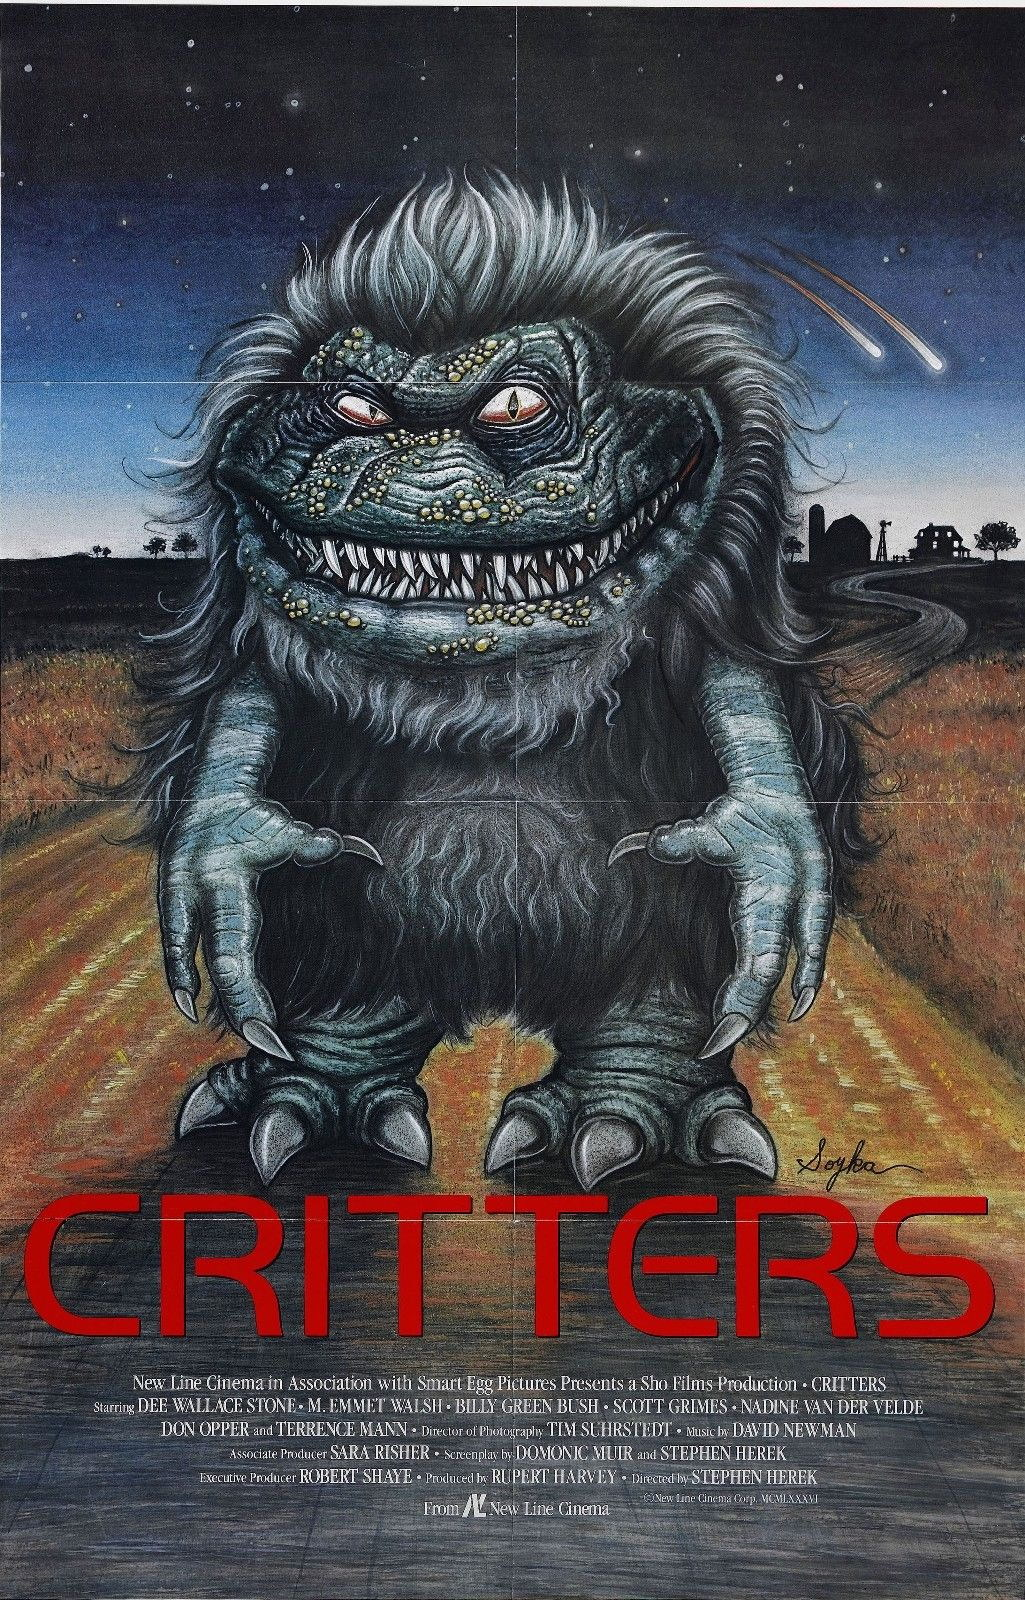 72342-CRITTERS-Movie-Horror-80-039-s-Sci-Fi-Wall-Print-Poster-Affiche